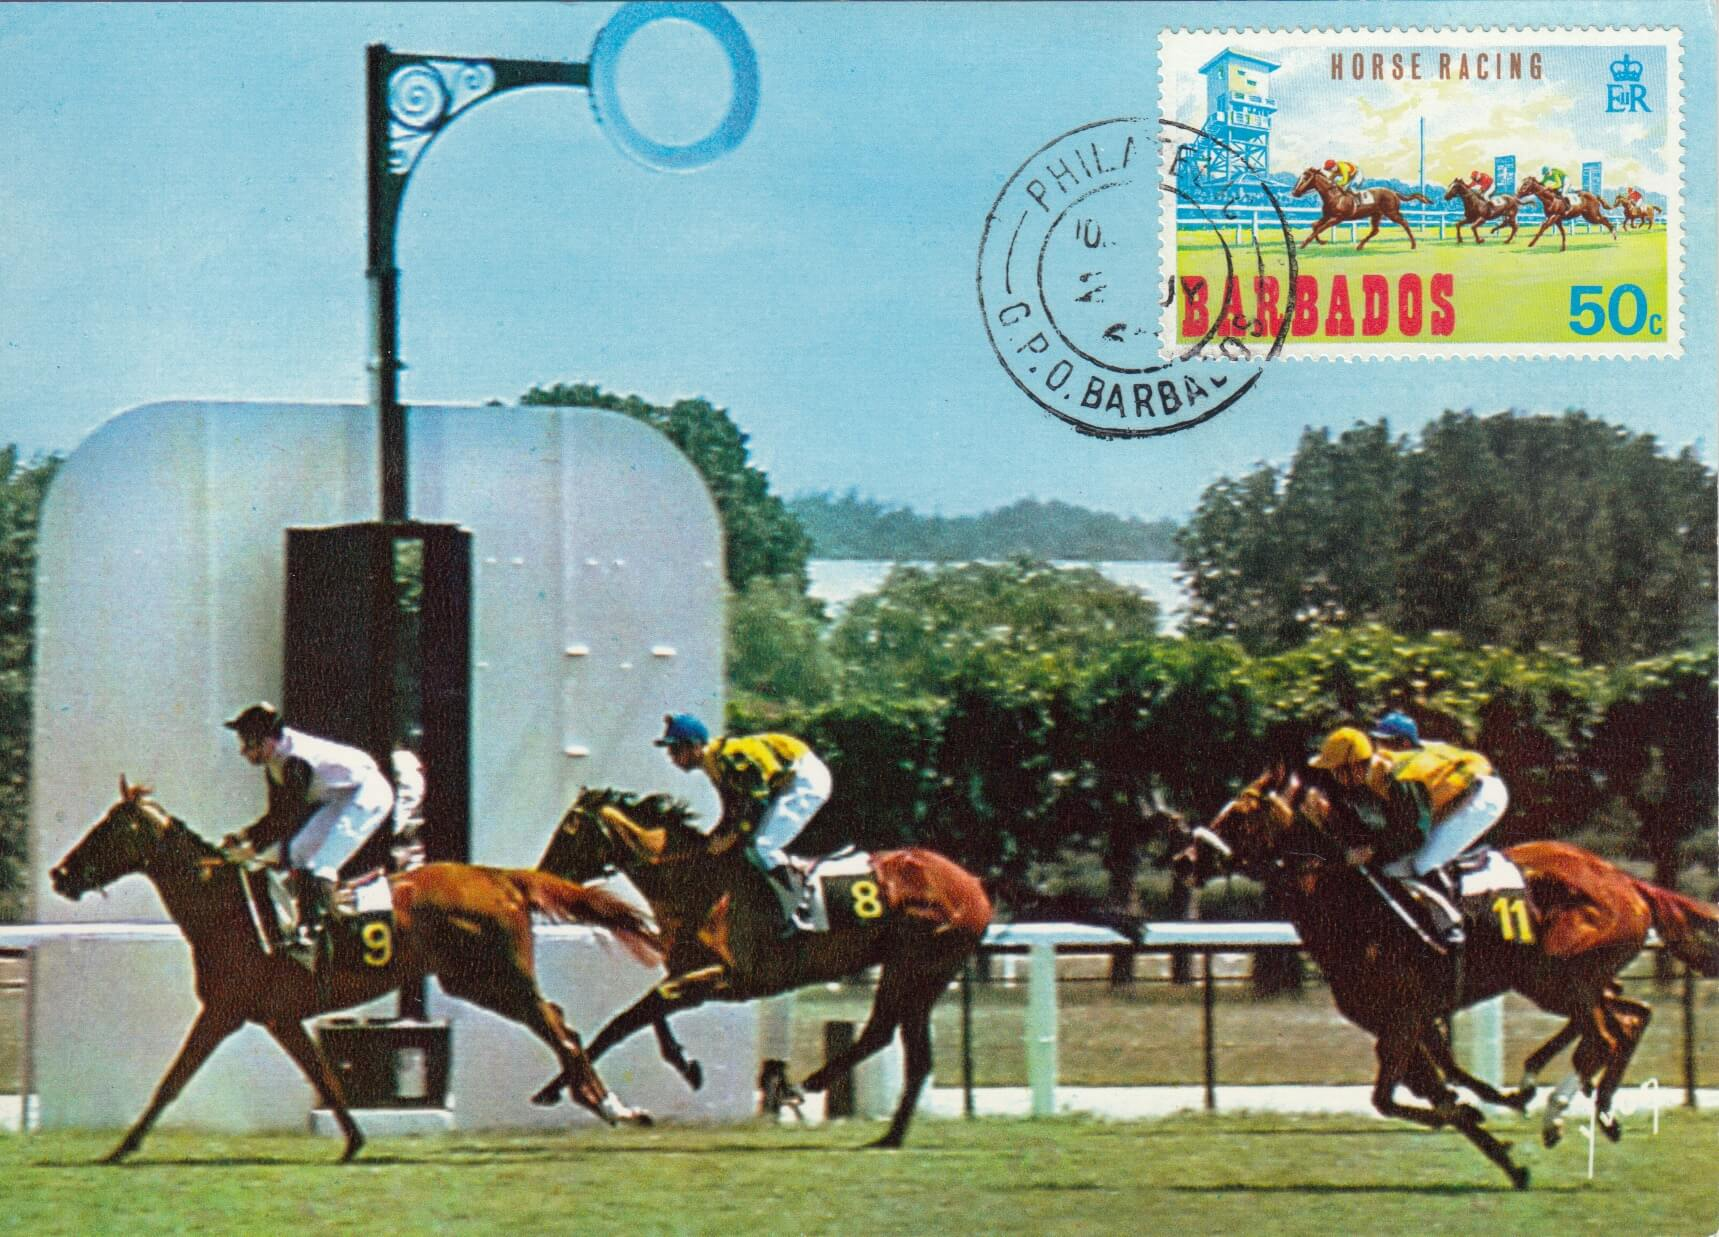 Unusual Barbados Horse Racing cards from the 1960's